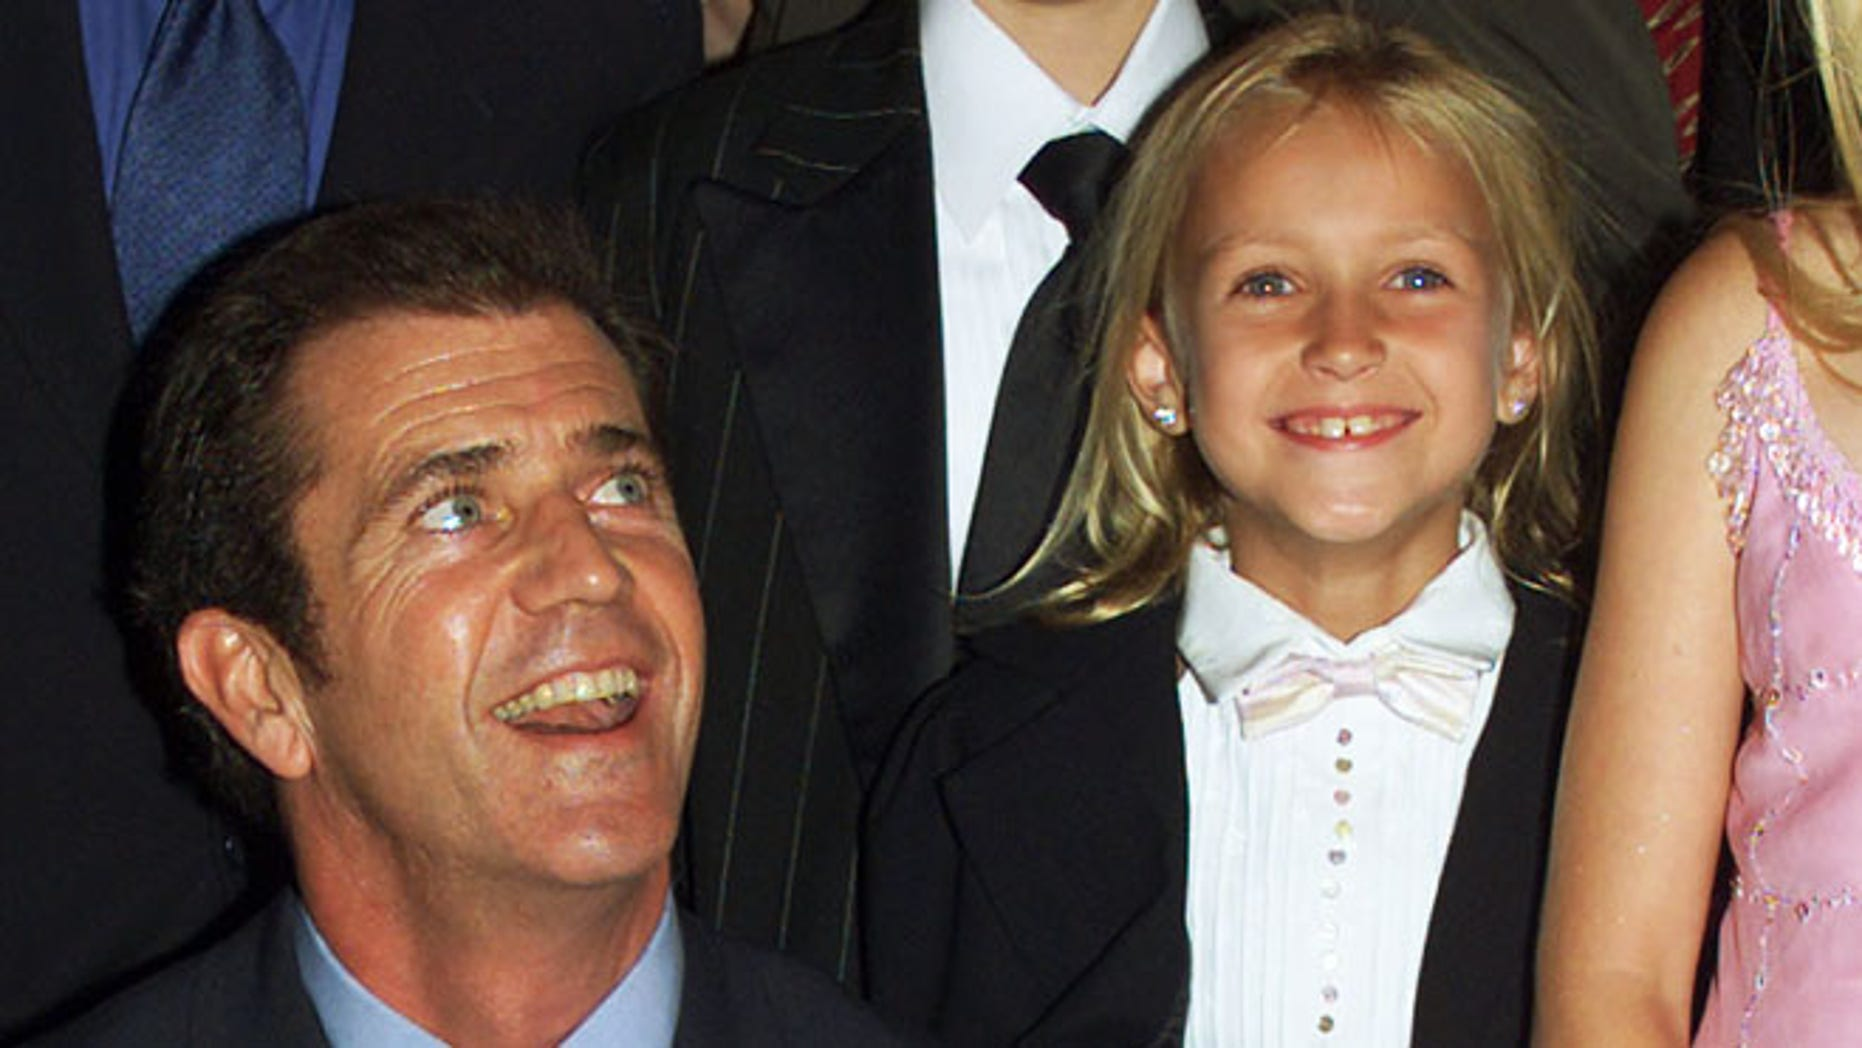 Mel Gibson and actress Skye McCole Bartusiak at 'The Patriot' premiere on June 27, 2000.